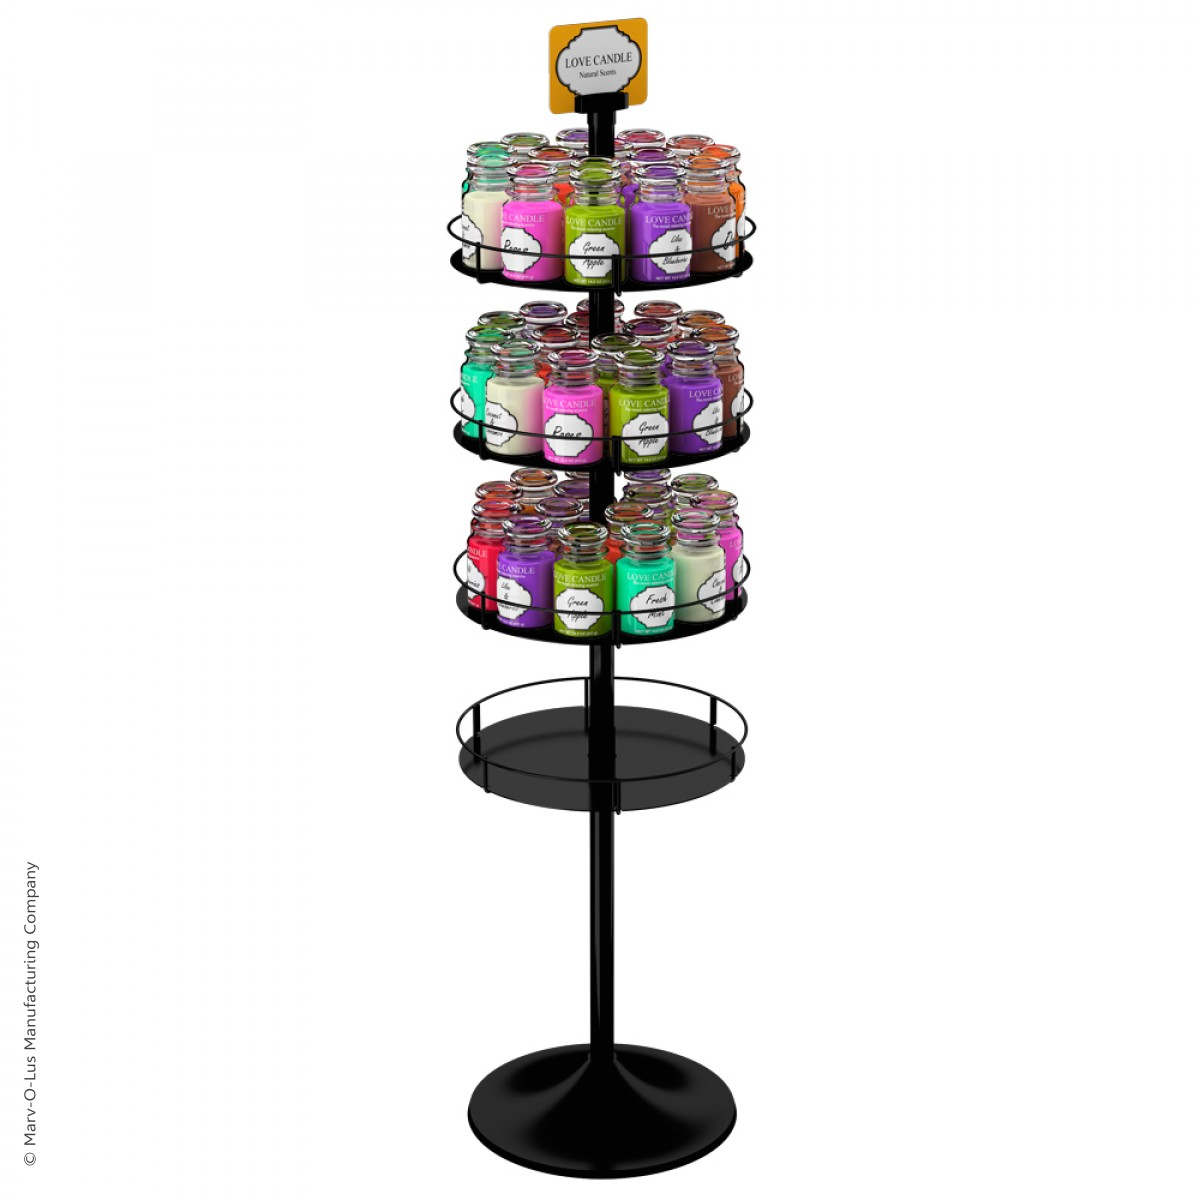 Exhibition Stand Round : Heavyweight floor display stand with round metal trays